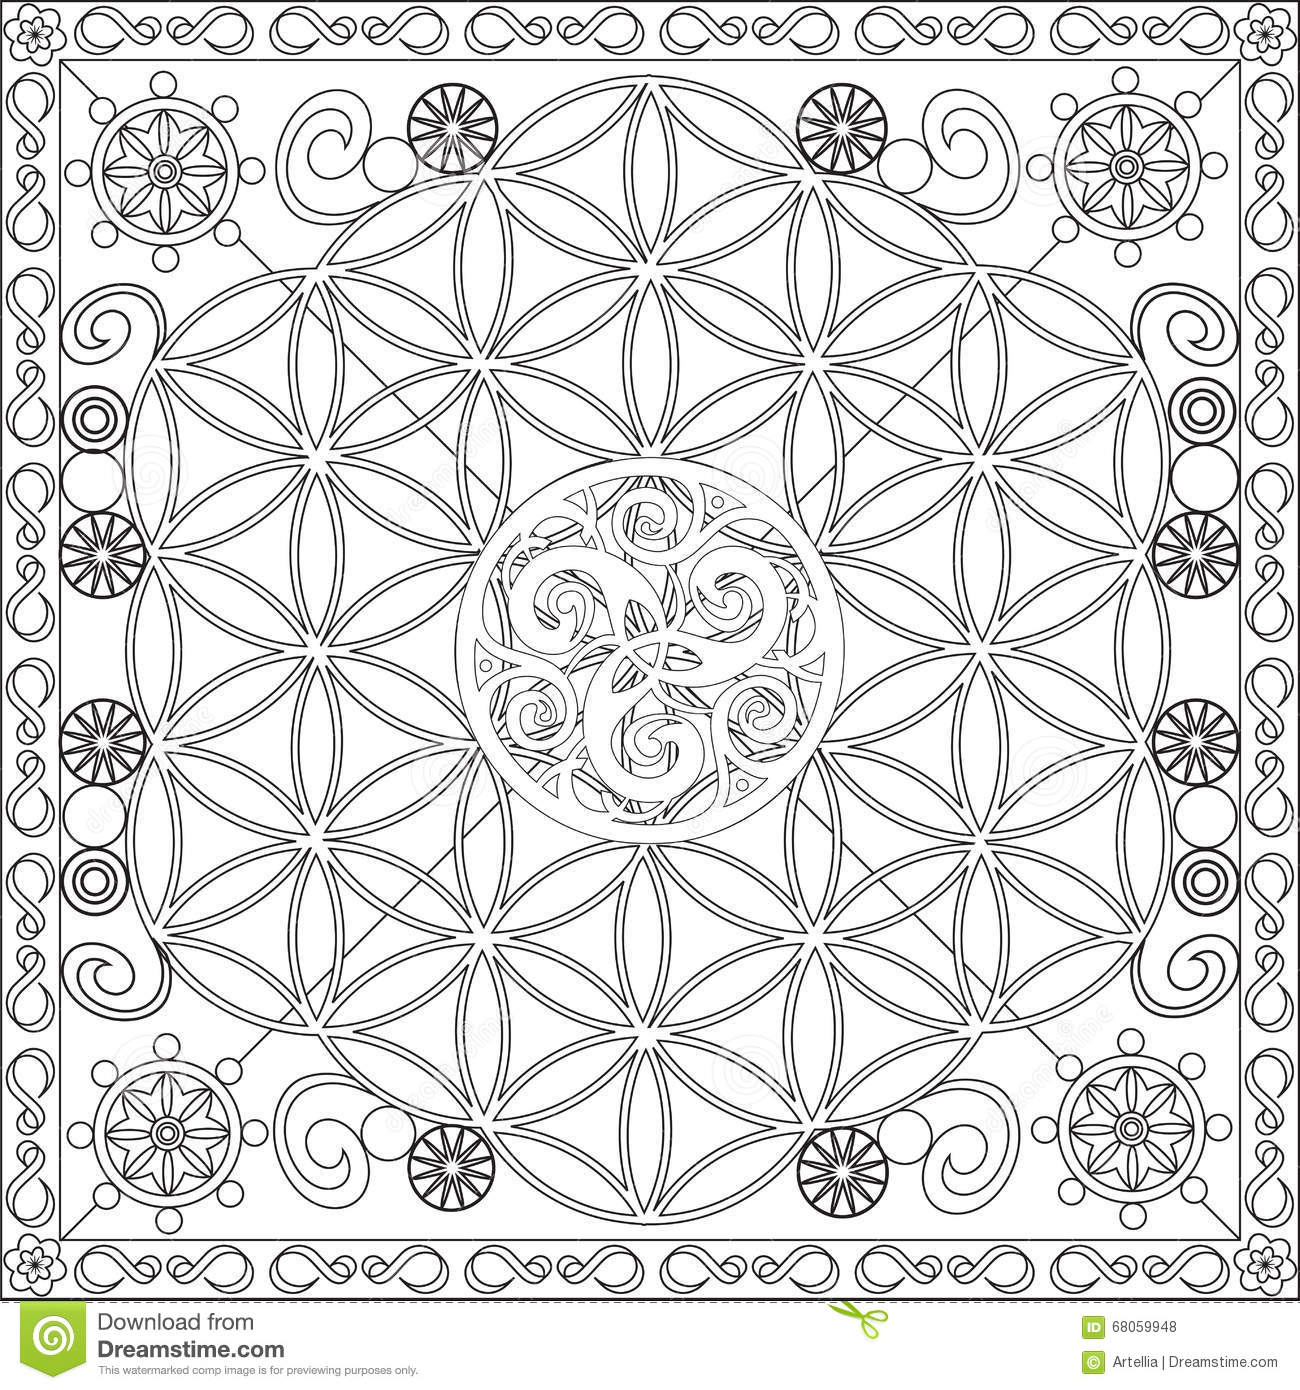 coloring page book adults square format flower life mandala design vector illustration blank spaces